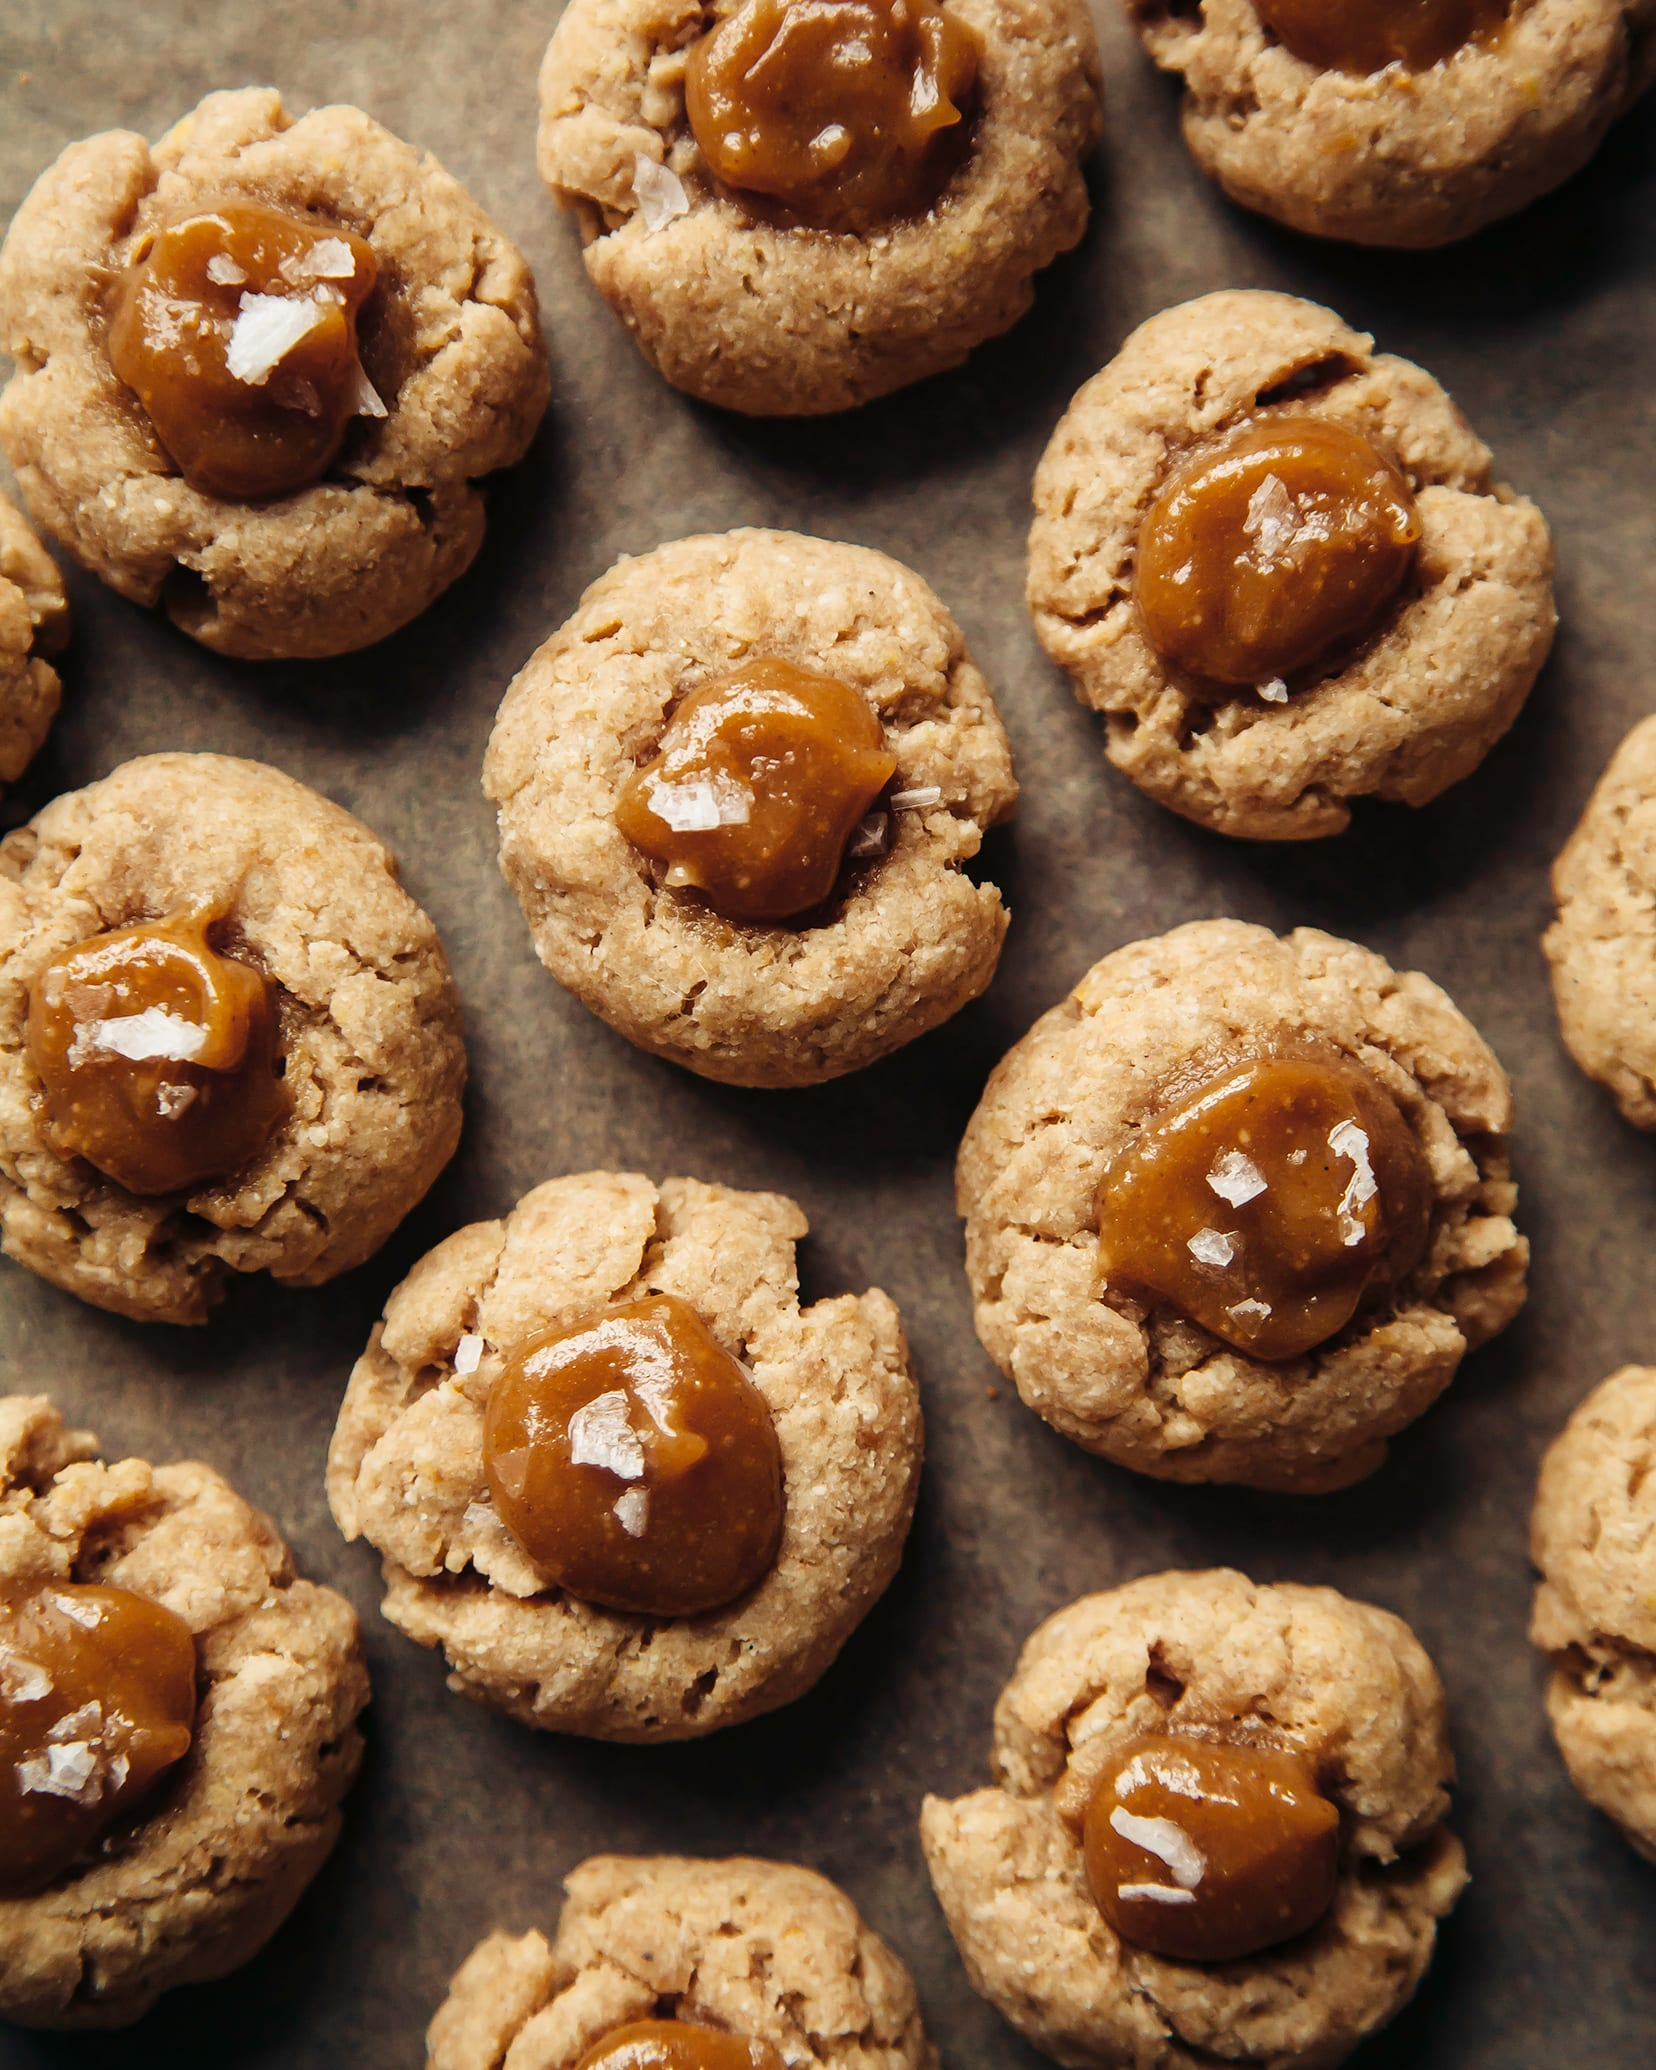 Overhead shot of cardamom thumbprint cookies with peanut butter caramel centers.